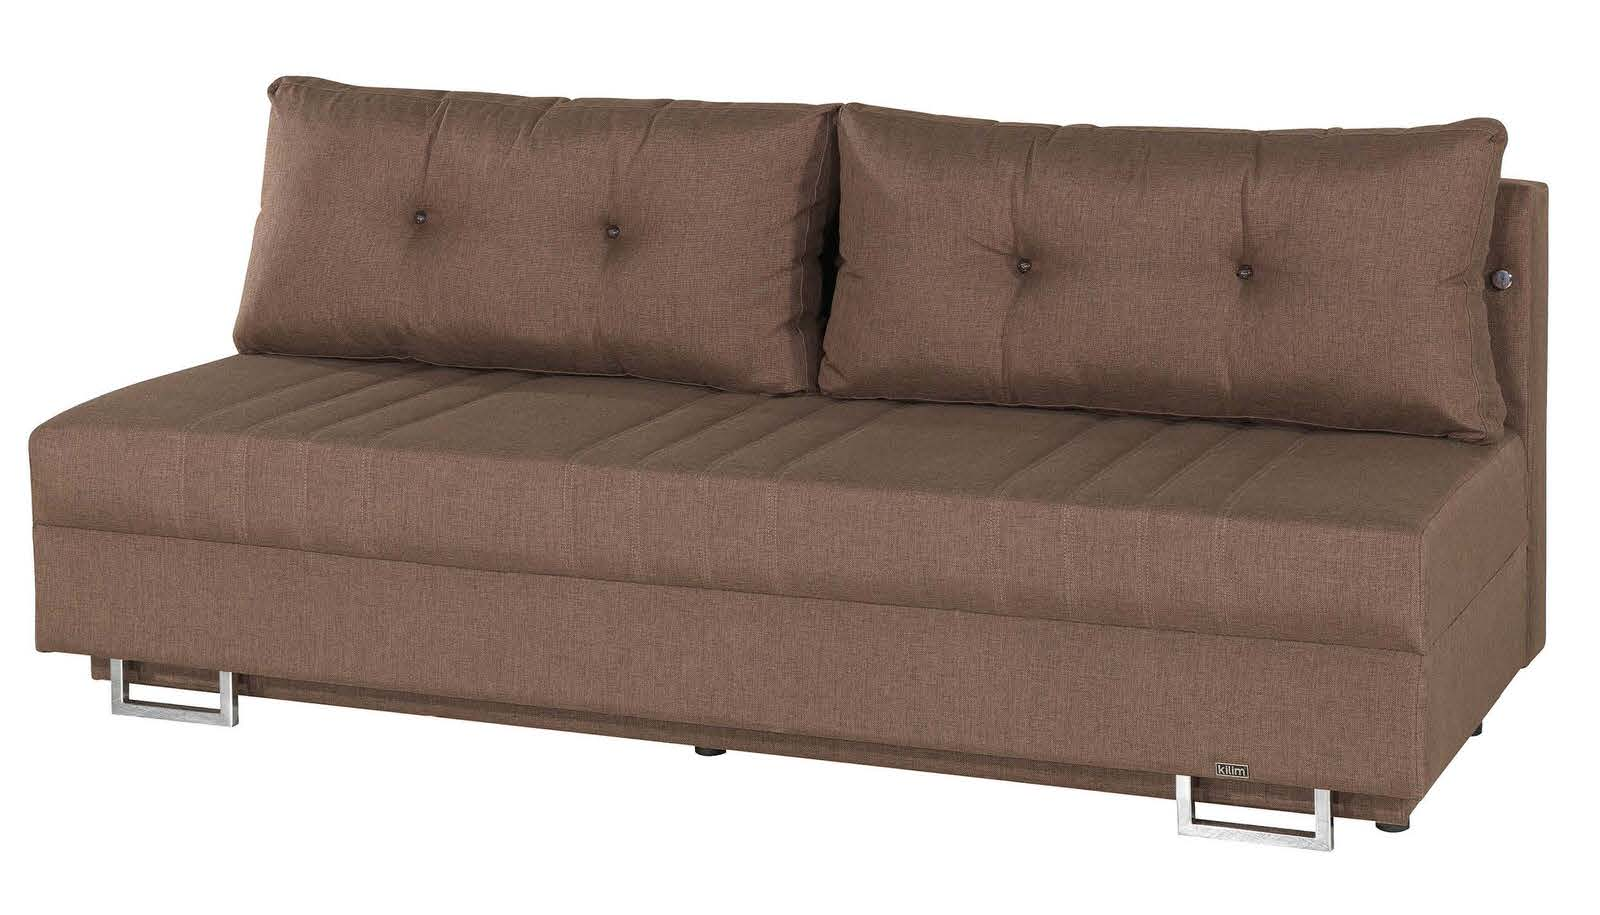 Flex motion brown queen sofa bed w storage by casamode for Sofa queen bed